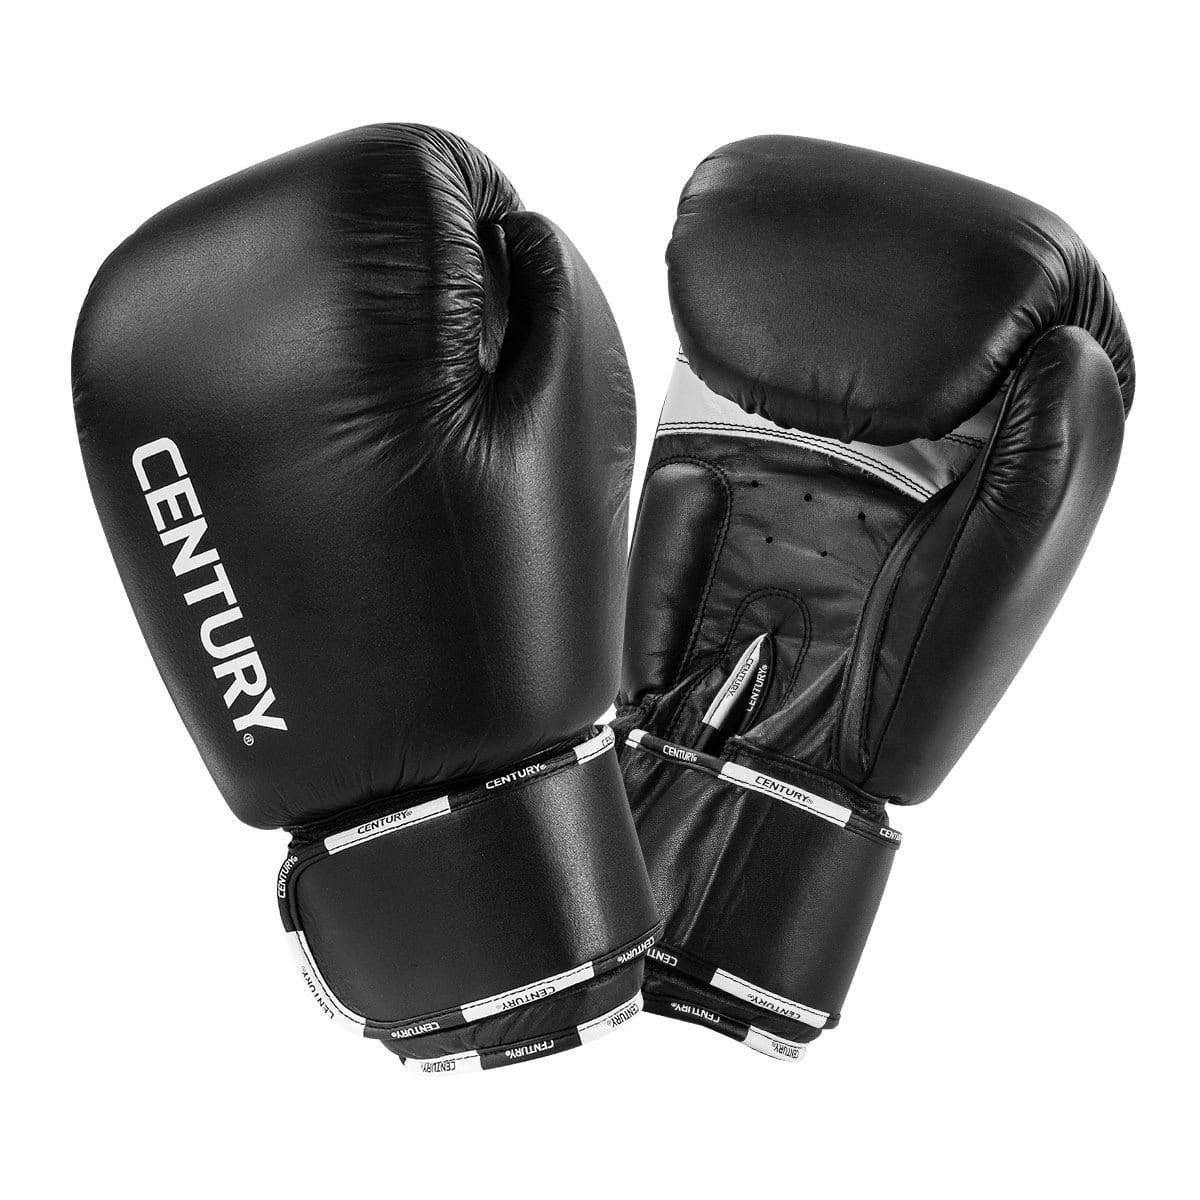 Century CREED Sparring Gloves